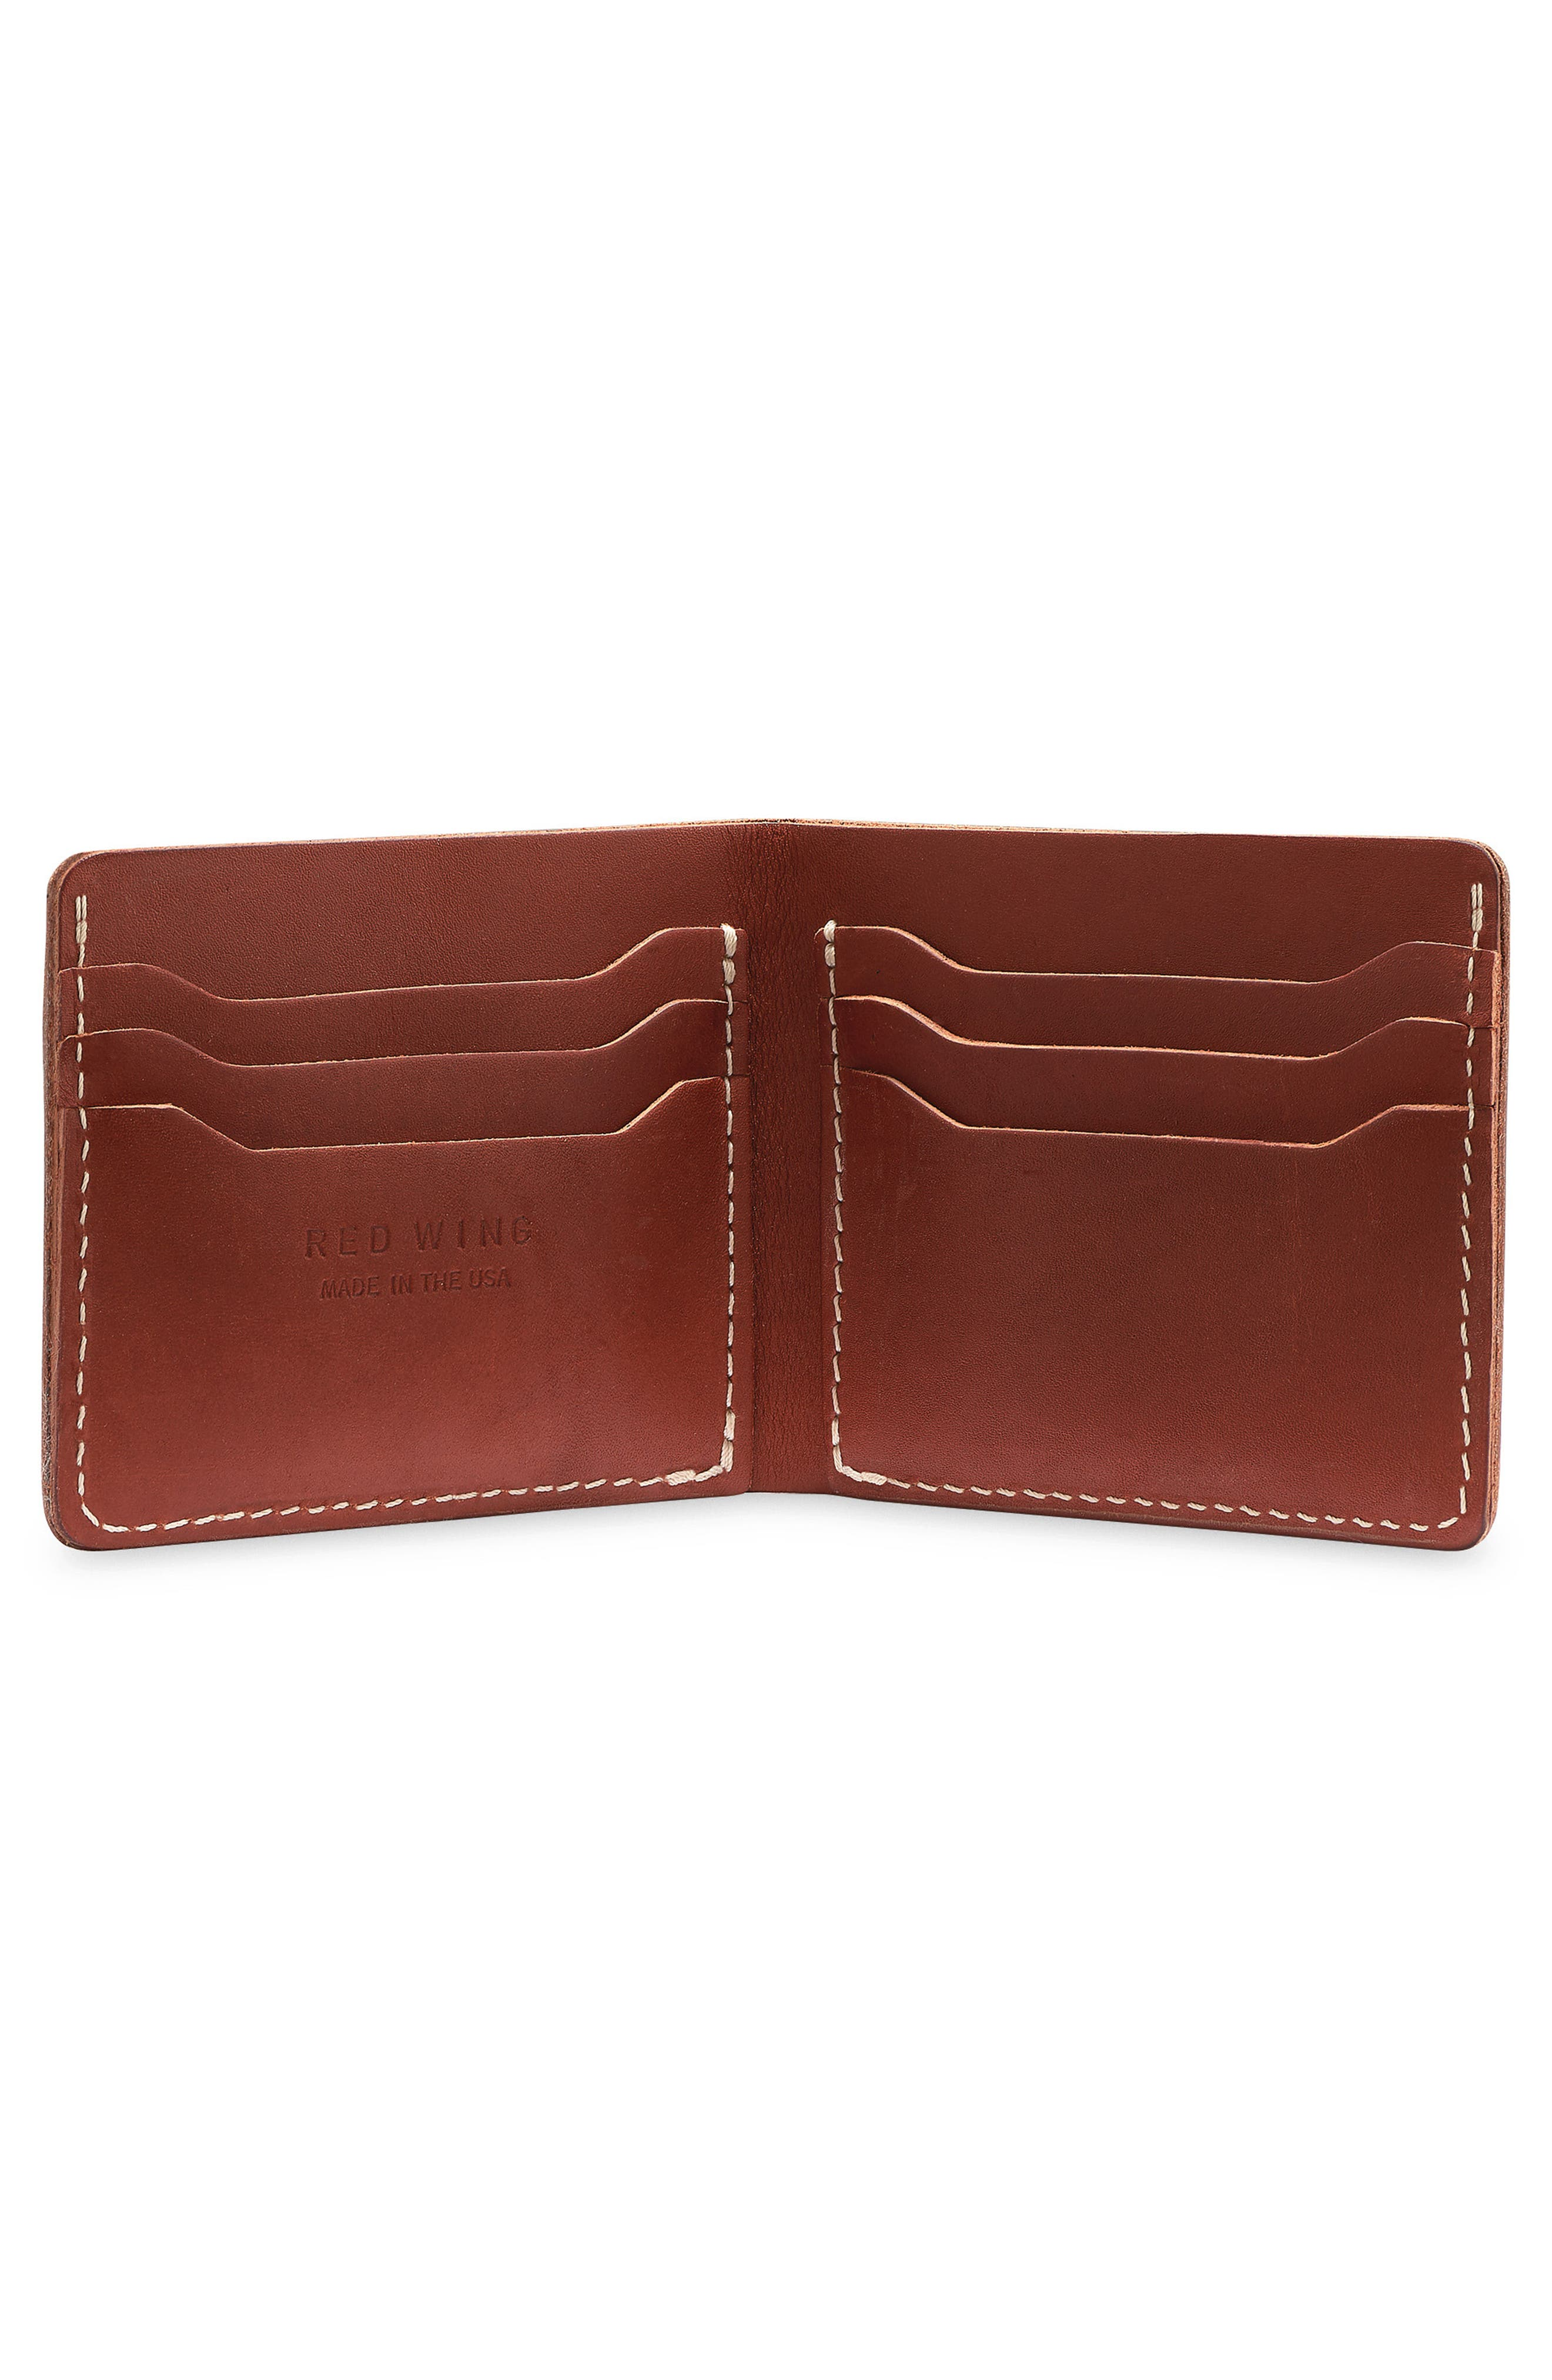 Classic Bifold Leather Wallet,                             Alternate thumbnail 2, color,                             Oro Russet